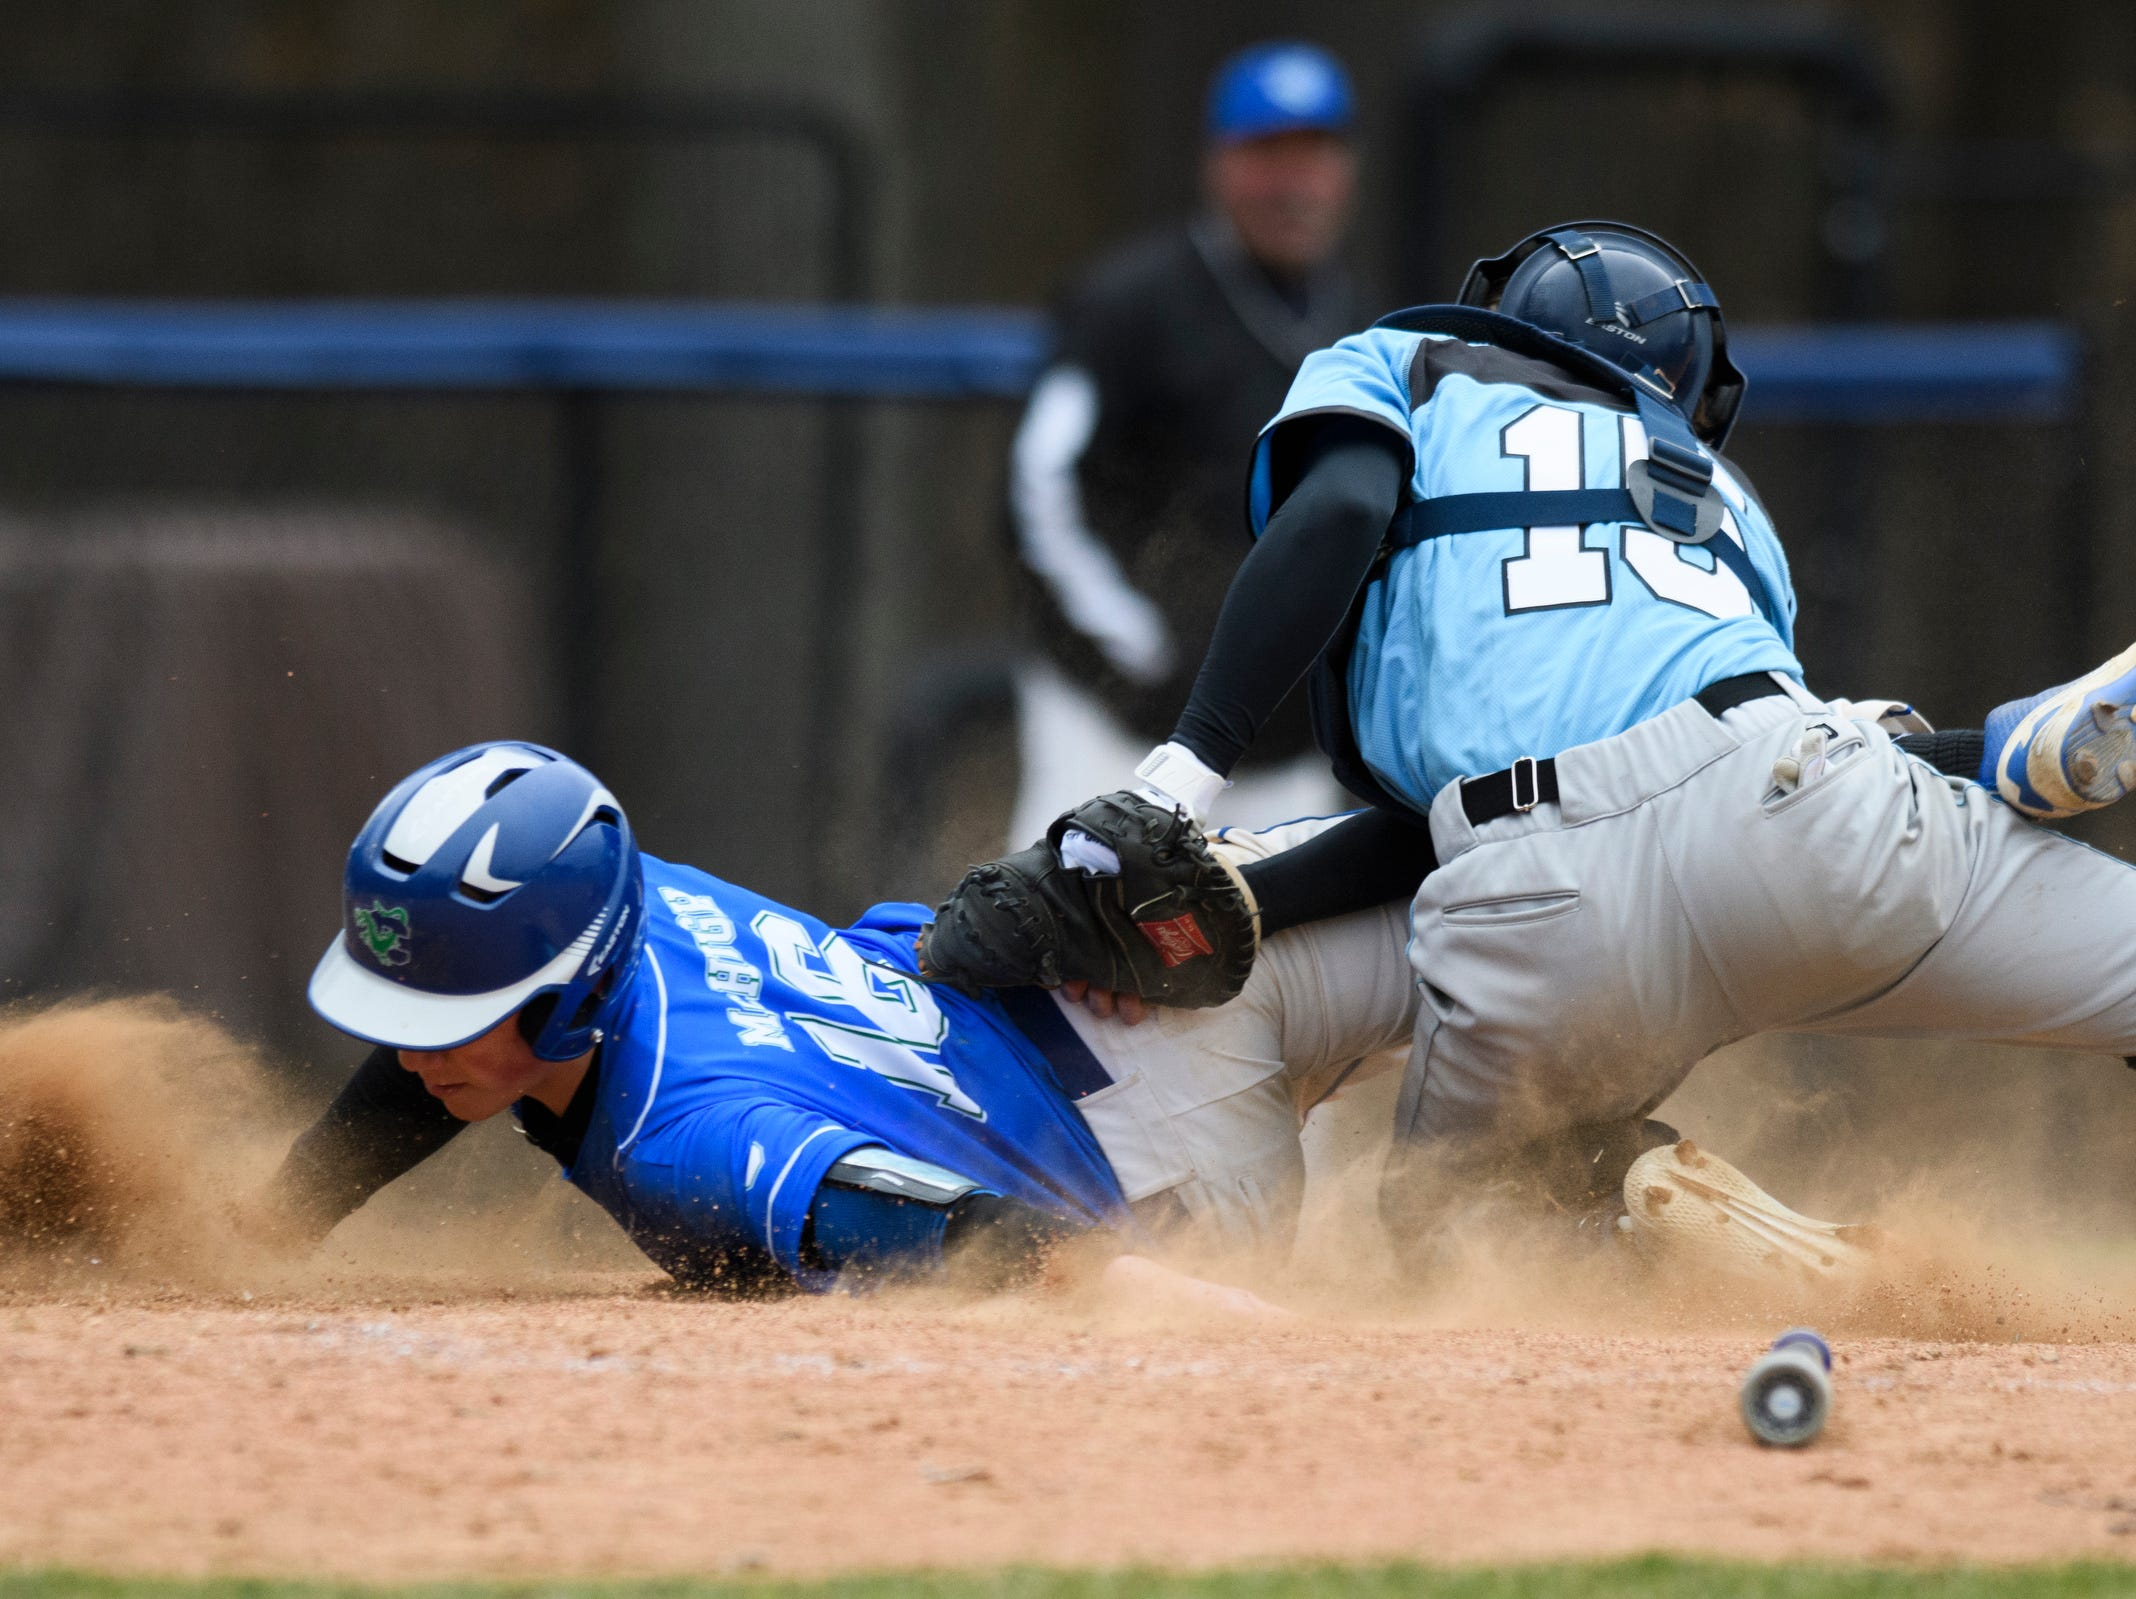 South Burlington catcher Brendan Precourt (15) tags out Colchester's Chris McHugh (16) as he slides into home plate during the boys baseball game between the South Burlington Wolves and the Colchester Lakers at Colchester high school on Thursday afternoon April 18, 2019 in Colchester, Vermont.